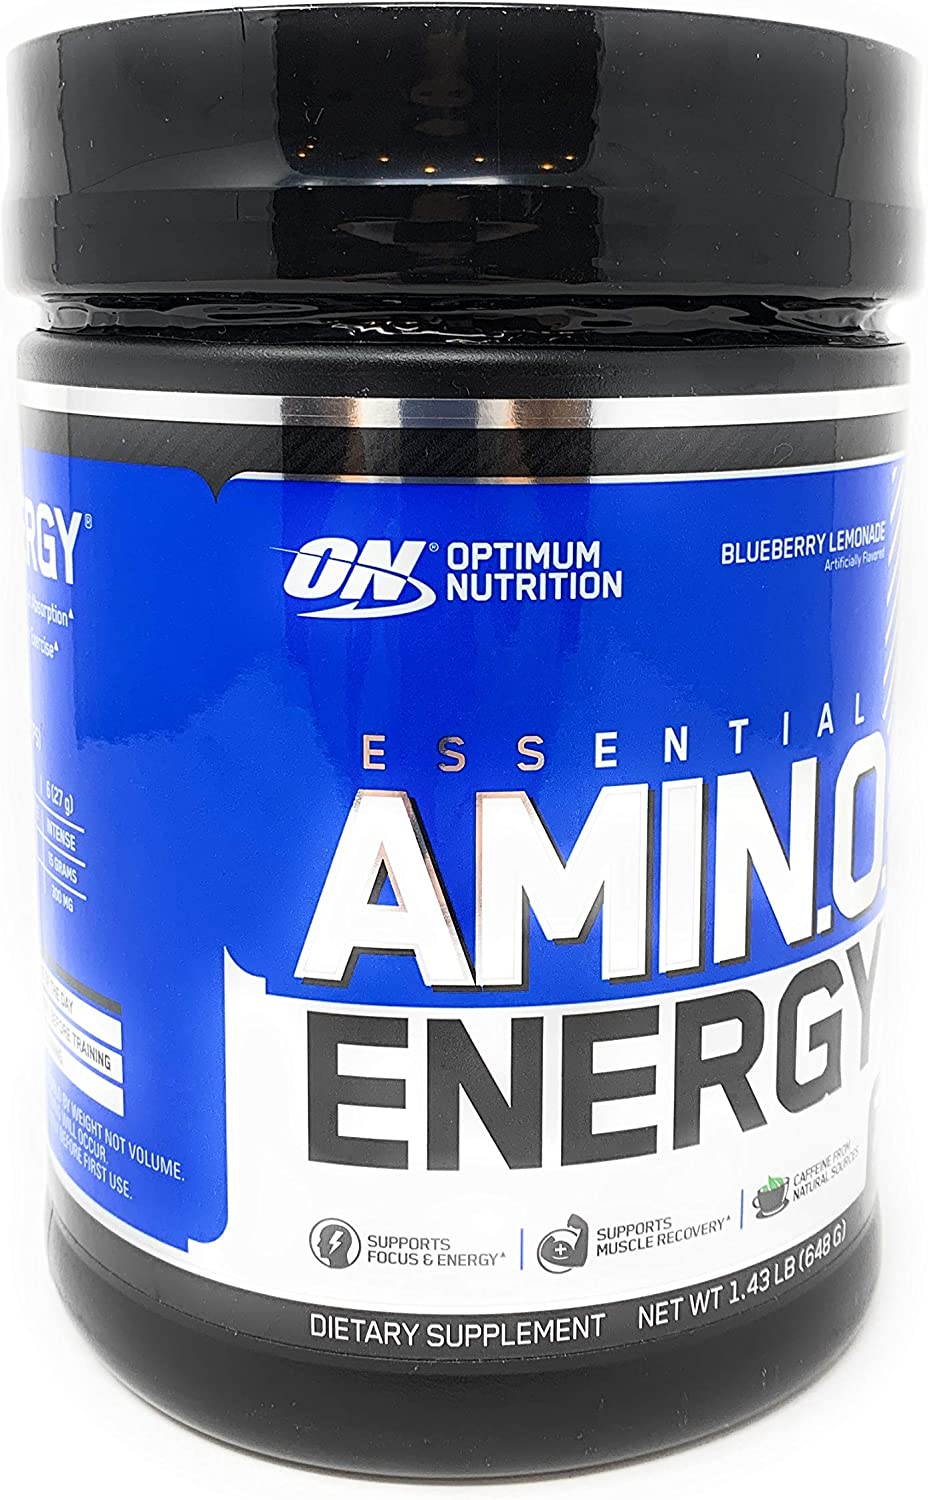 OPTIMUM NUTRITION Essential Amino All stores are sold Energy Gree with and Product Tea Green